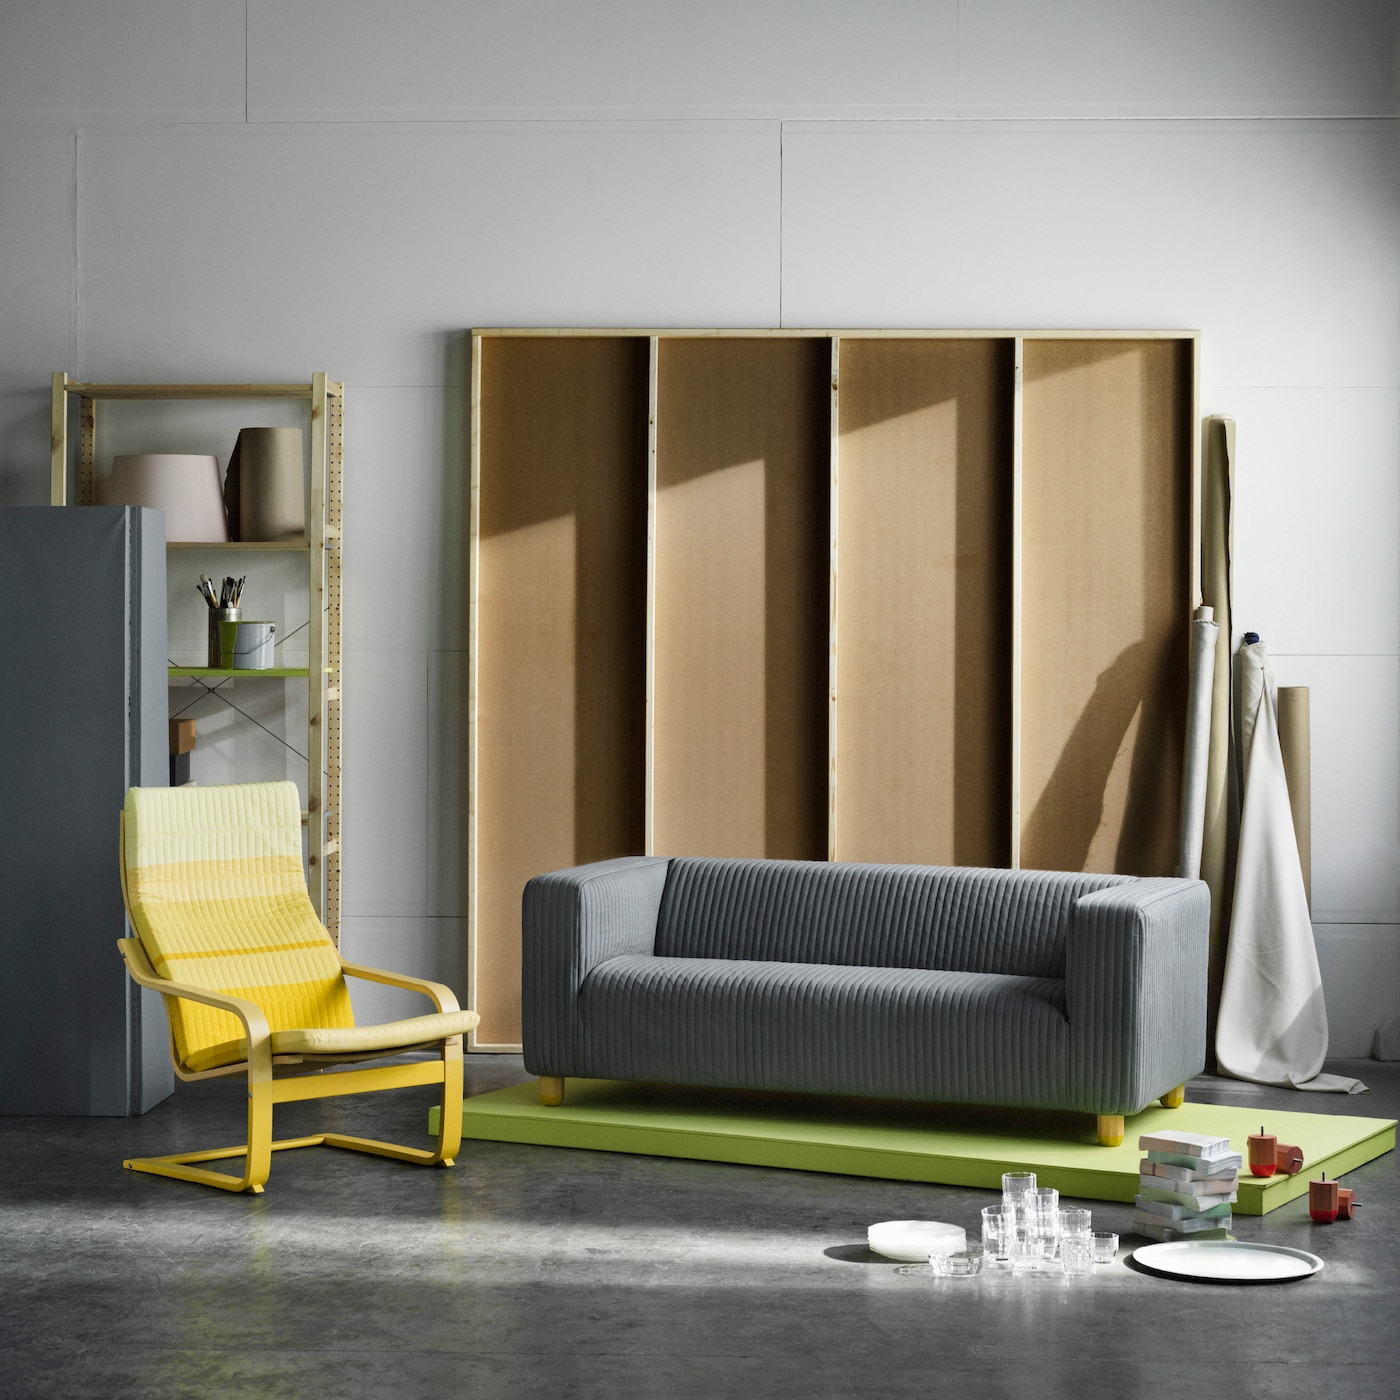 A grey KLIPPAN sofa on a green rug and a yellow POÄNG armchair, products hacked by Dutch designers Scholten & Baijings.